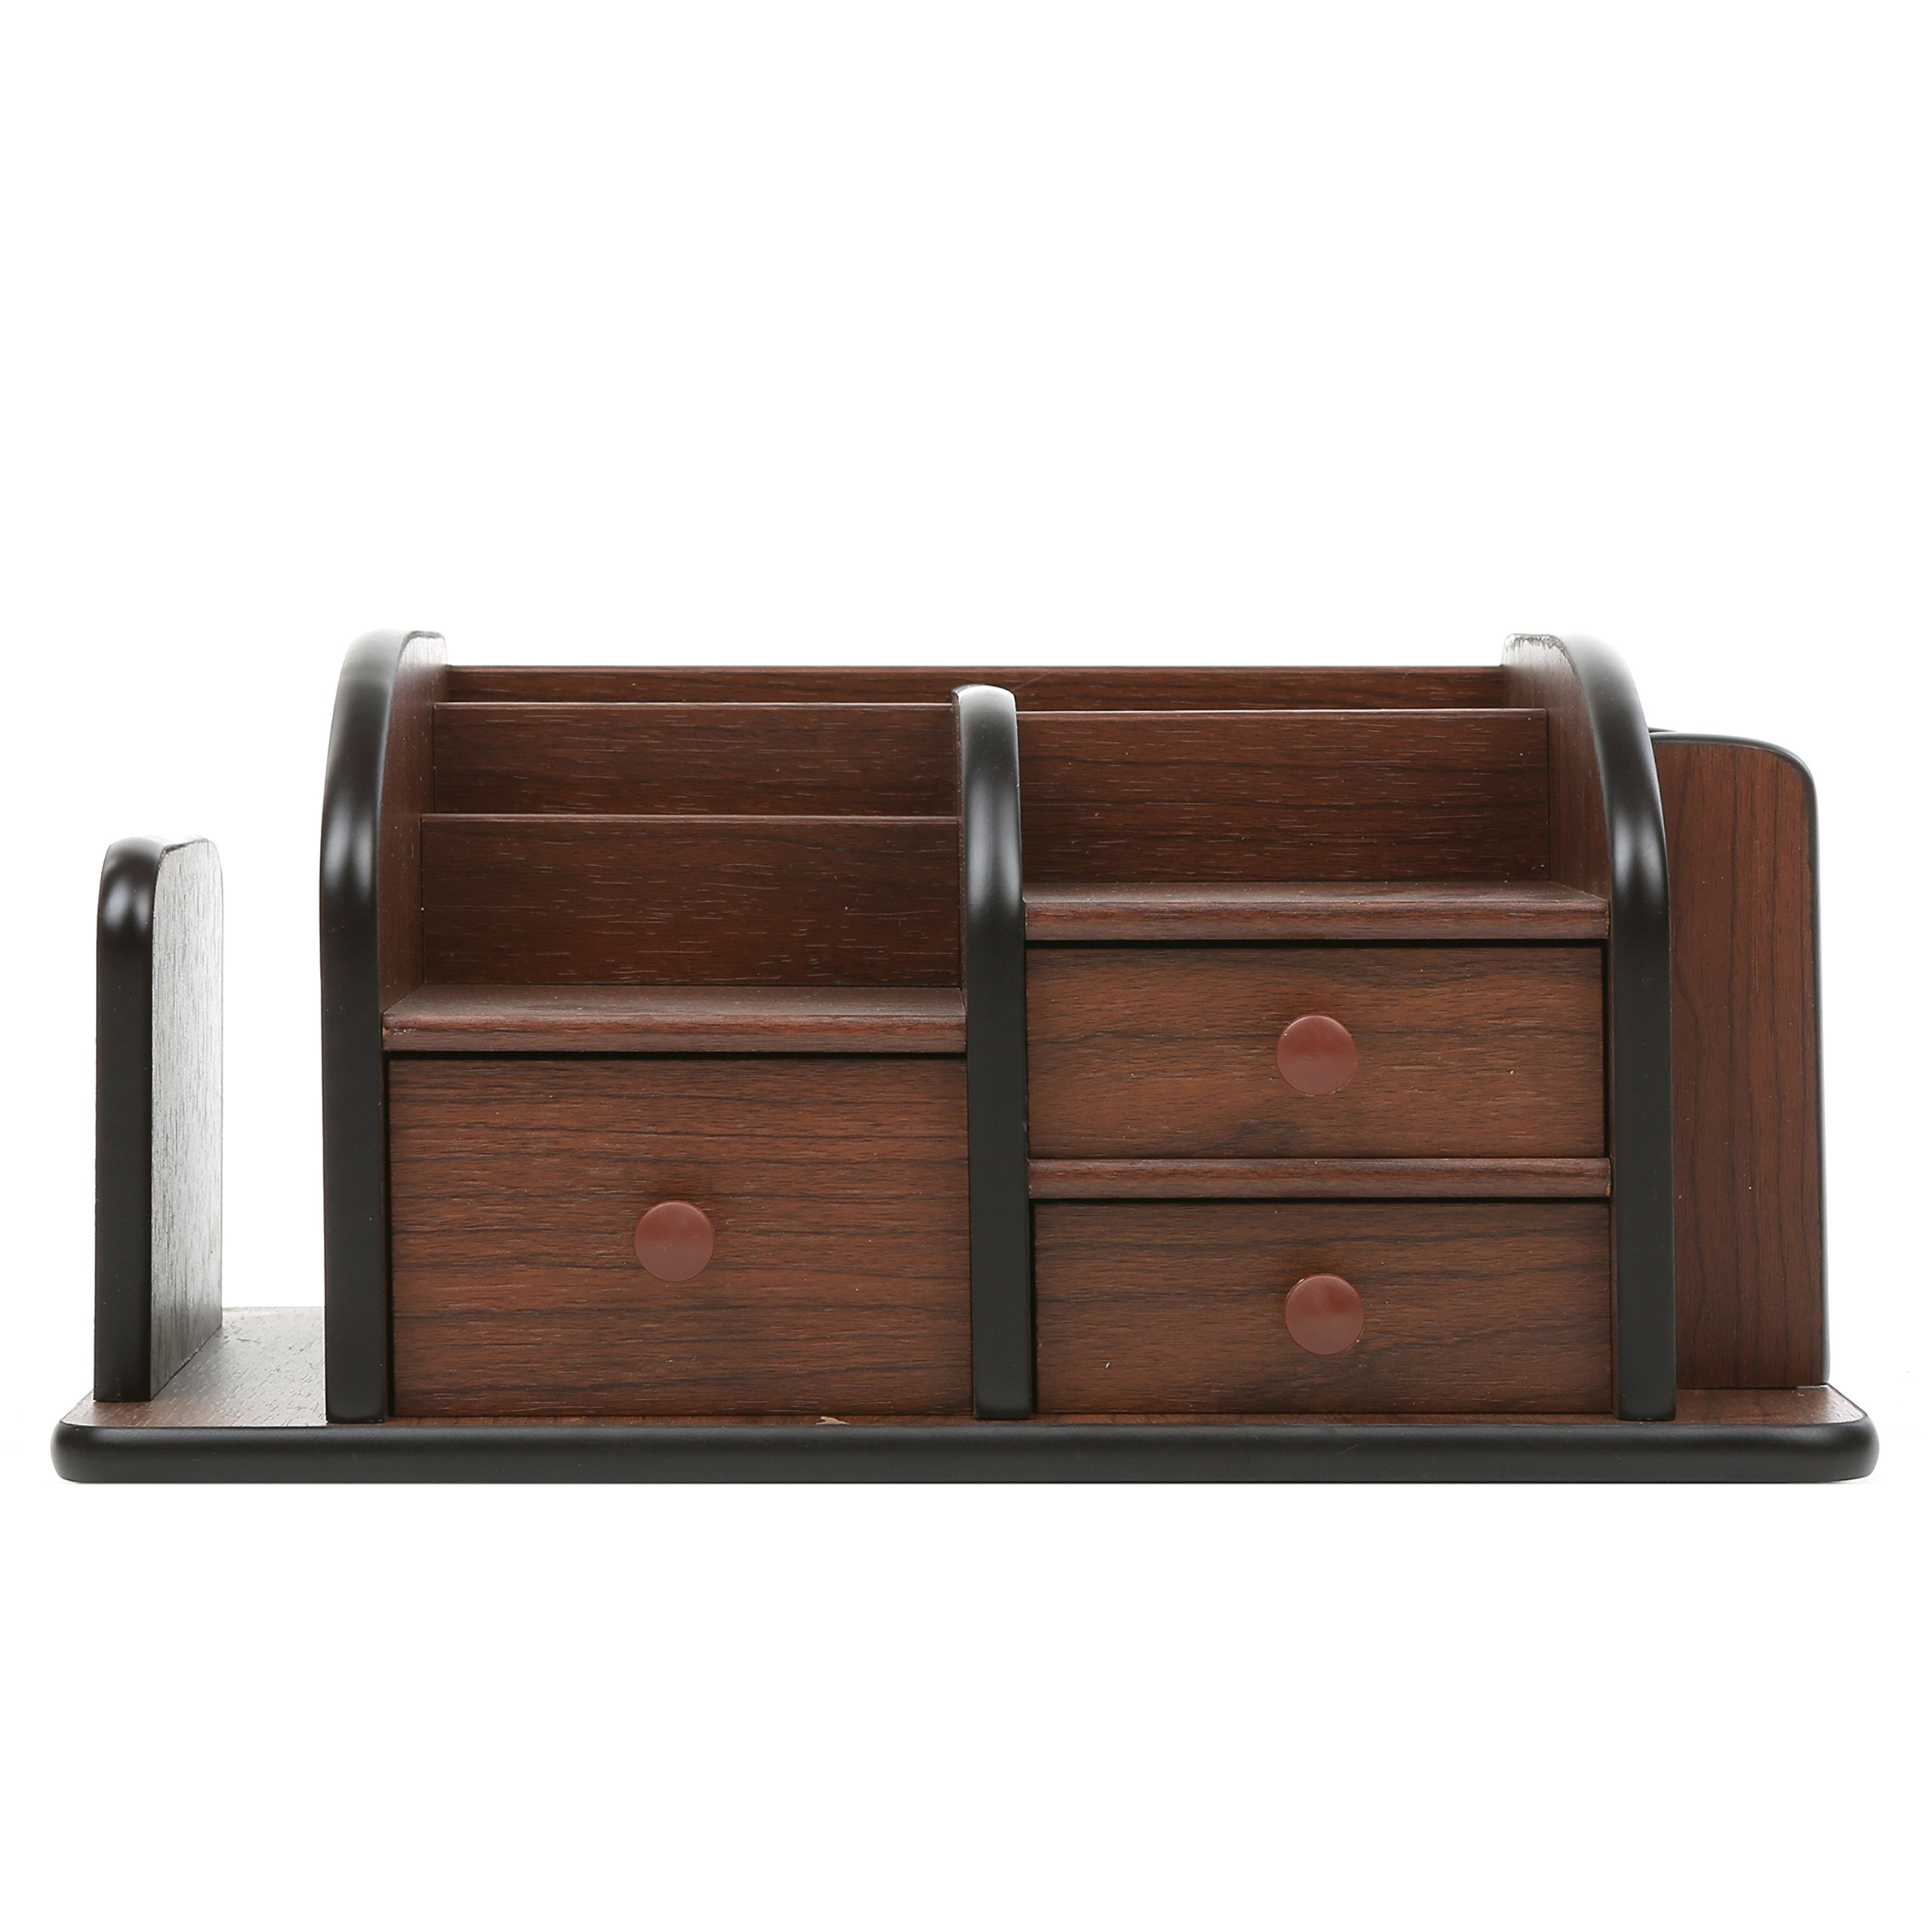 MyGift Wood Office Supplies Organizer With 3 Drawers